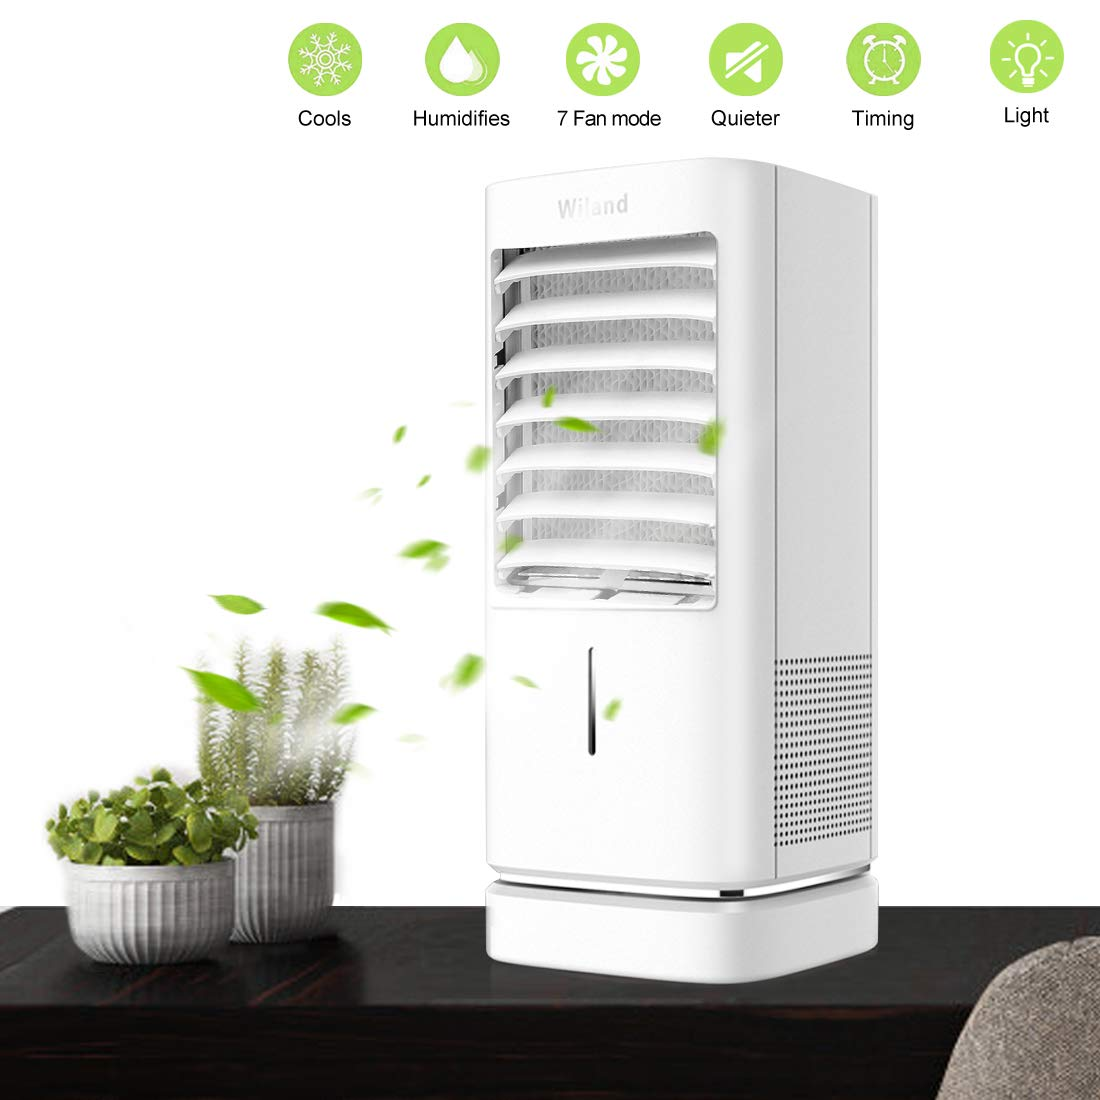 Multifunctional Air Cooler Air Conditioner Fan, Moving Desktop Cooling Fan with Timer/Lights for Home Office Bedroom by WiLand